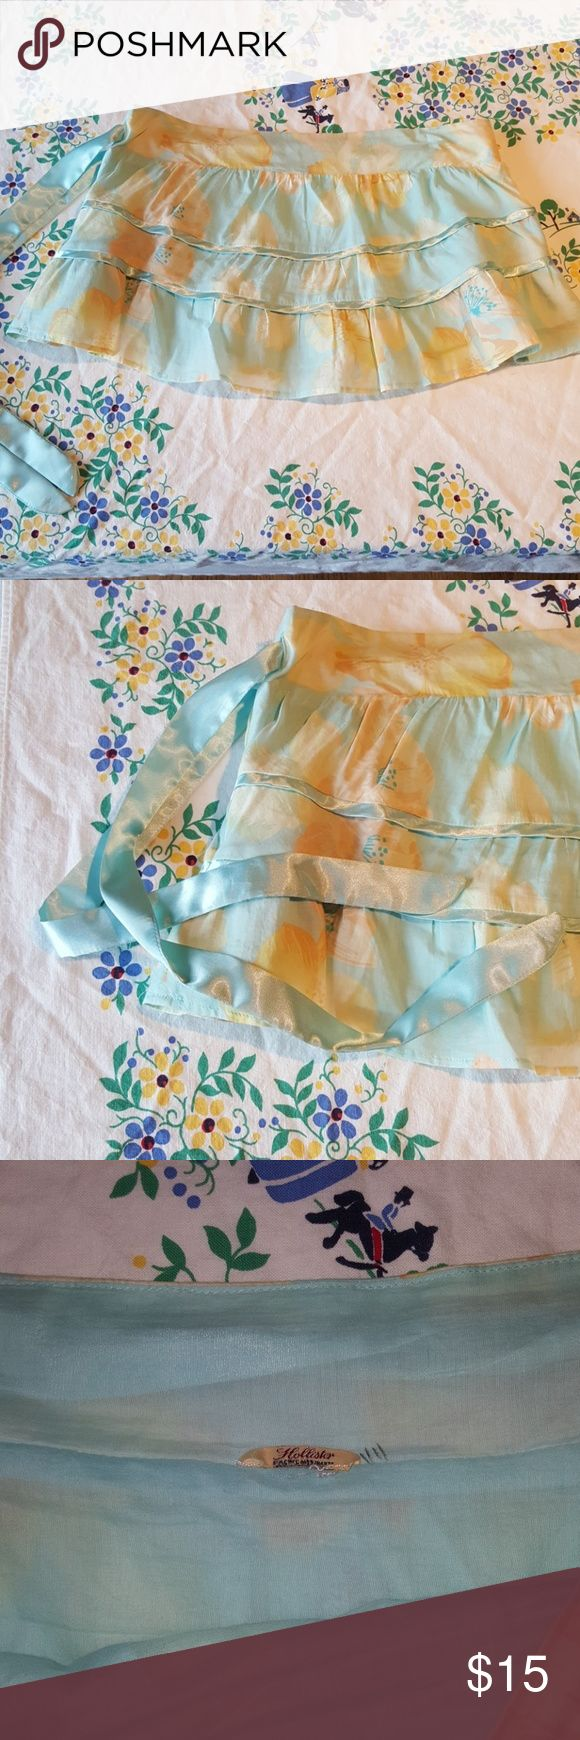 Hollister micro mini skirt This adorable skirt is super sweet in pastel floral print, but also a little naughty in being very short! Fully lined. Size tag missing, but fits like a junior L/XL. Measurements shown in pics. EUC, no stains. Hollister Skirts Mini